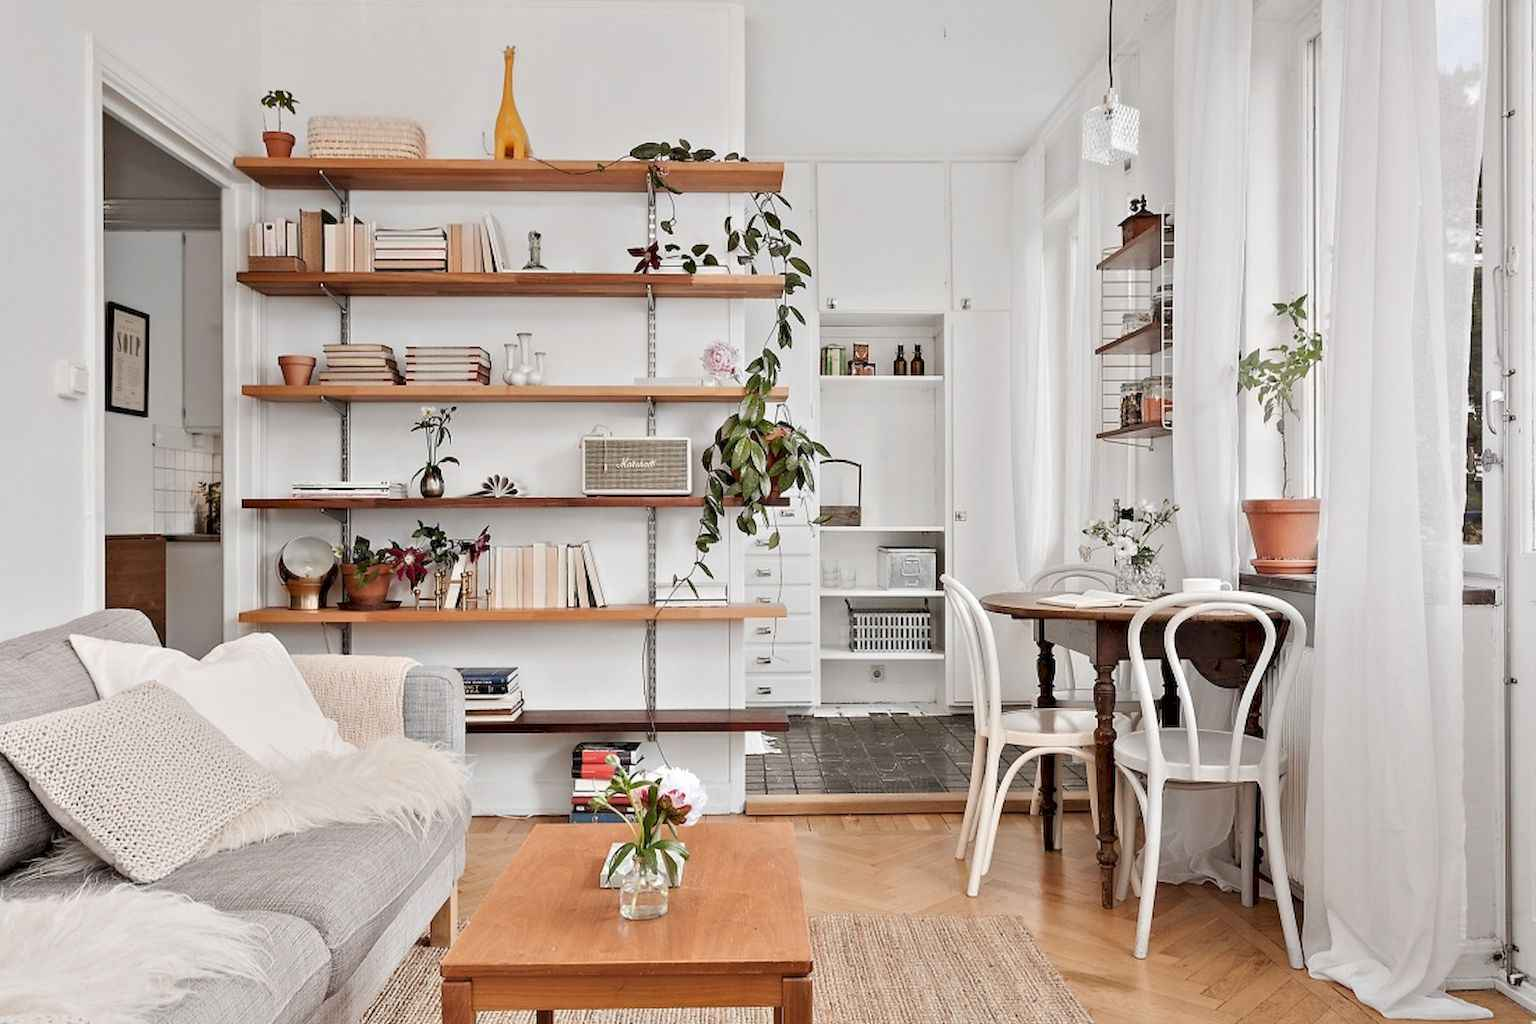 Cool small apartment decorating ideas on a budget (54)